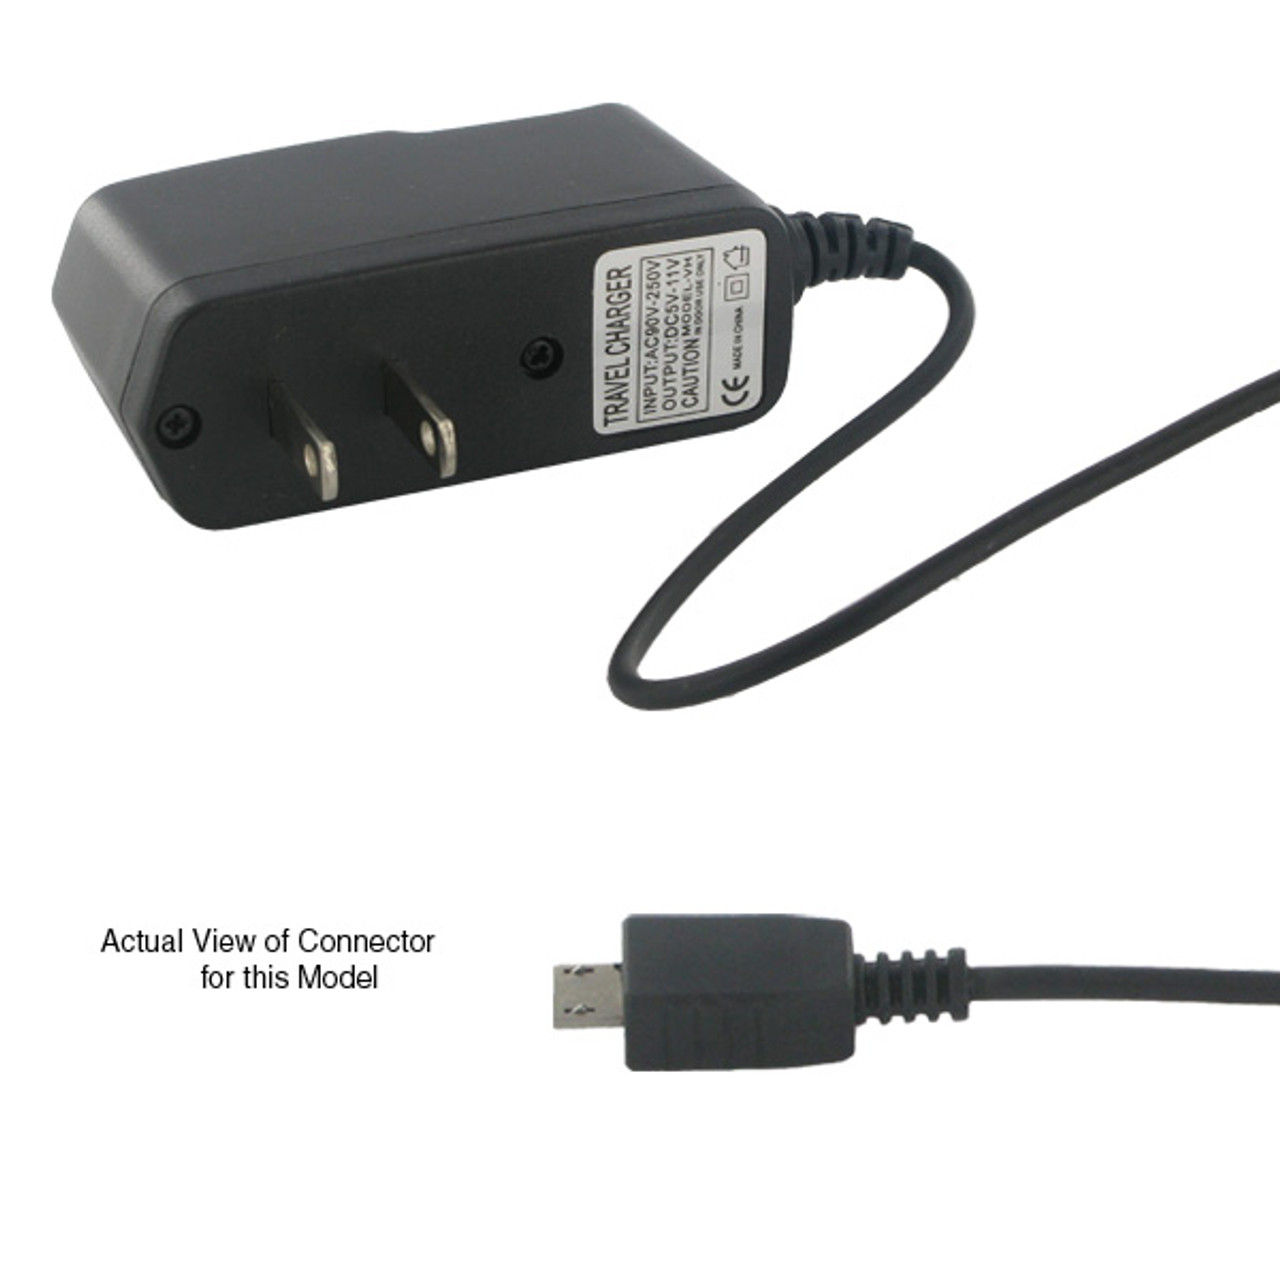 Universal Cellular Phone AC Travel Charger (Compatible Models Below)